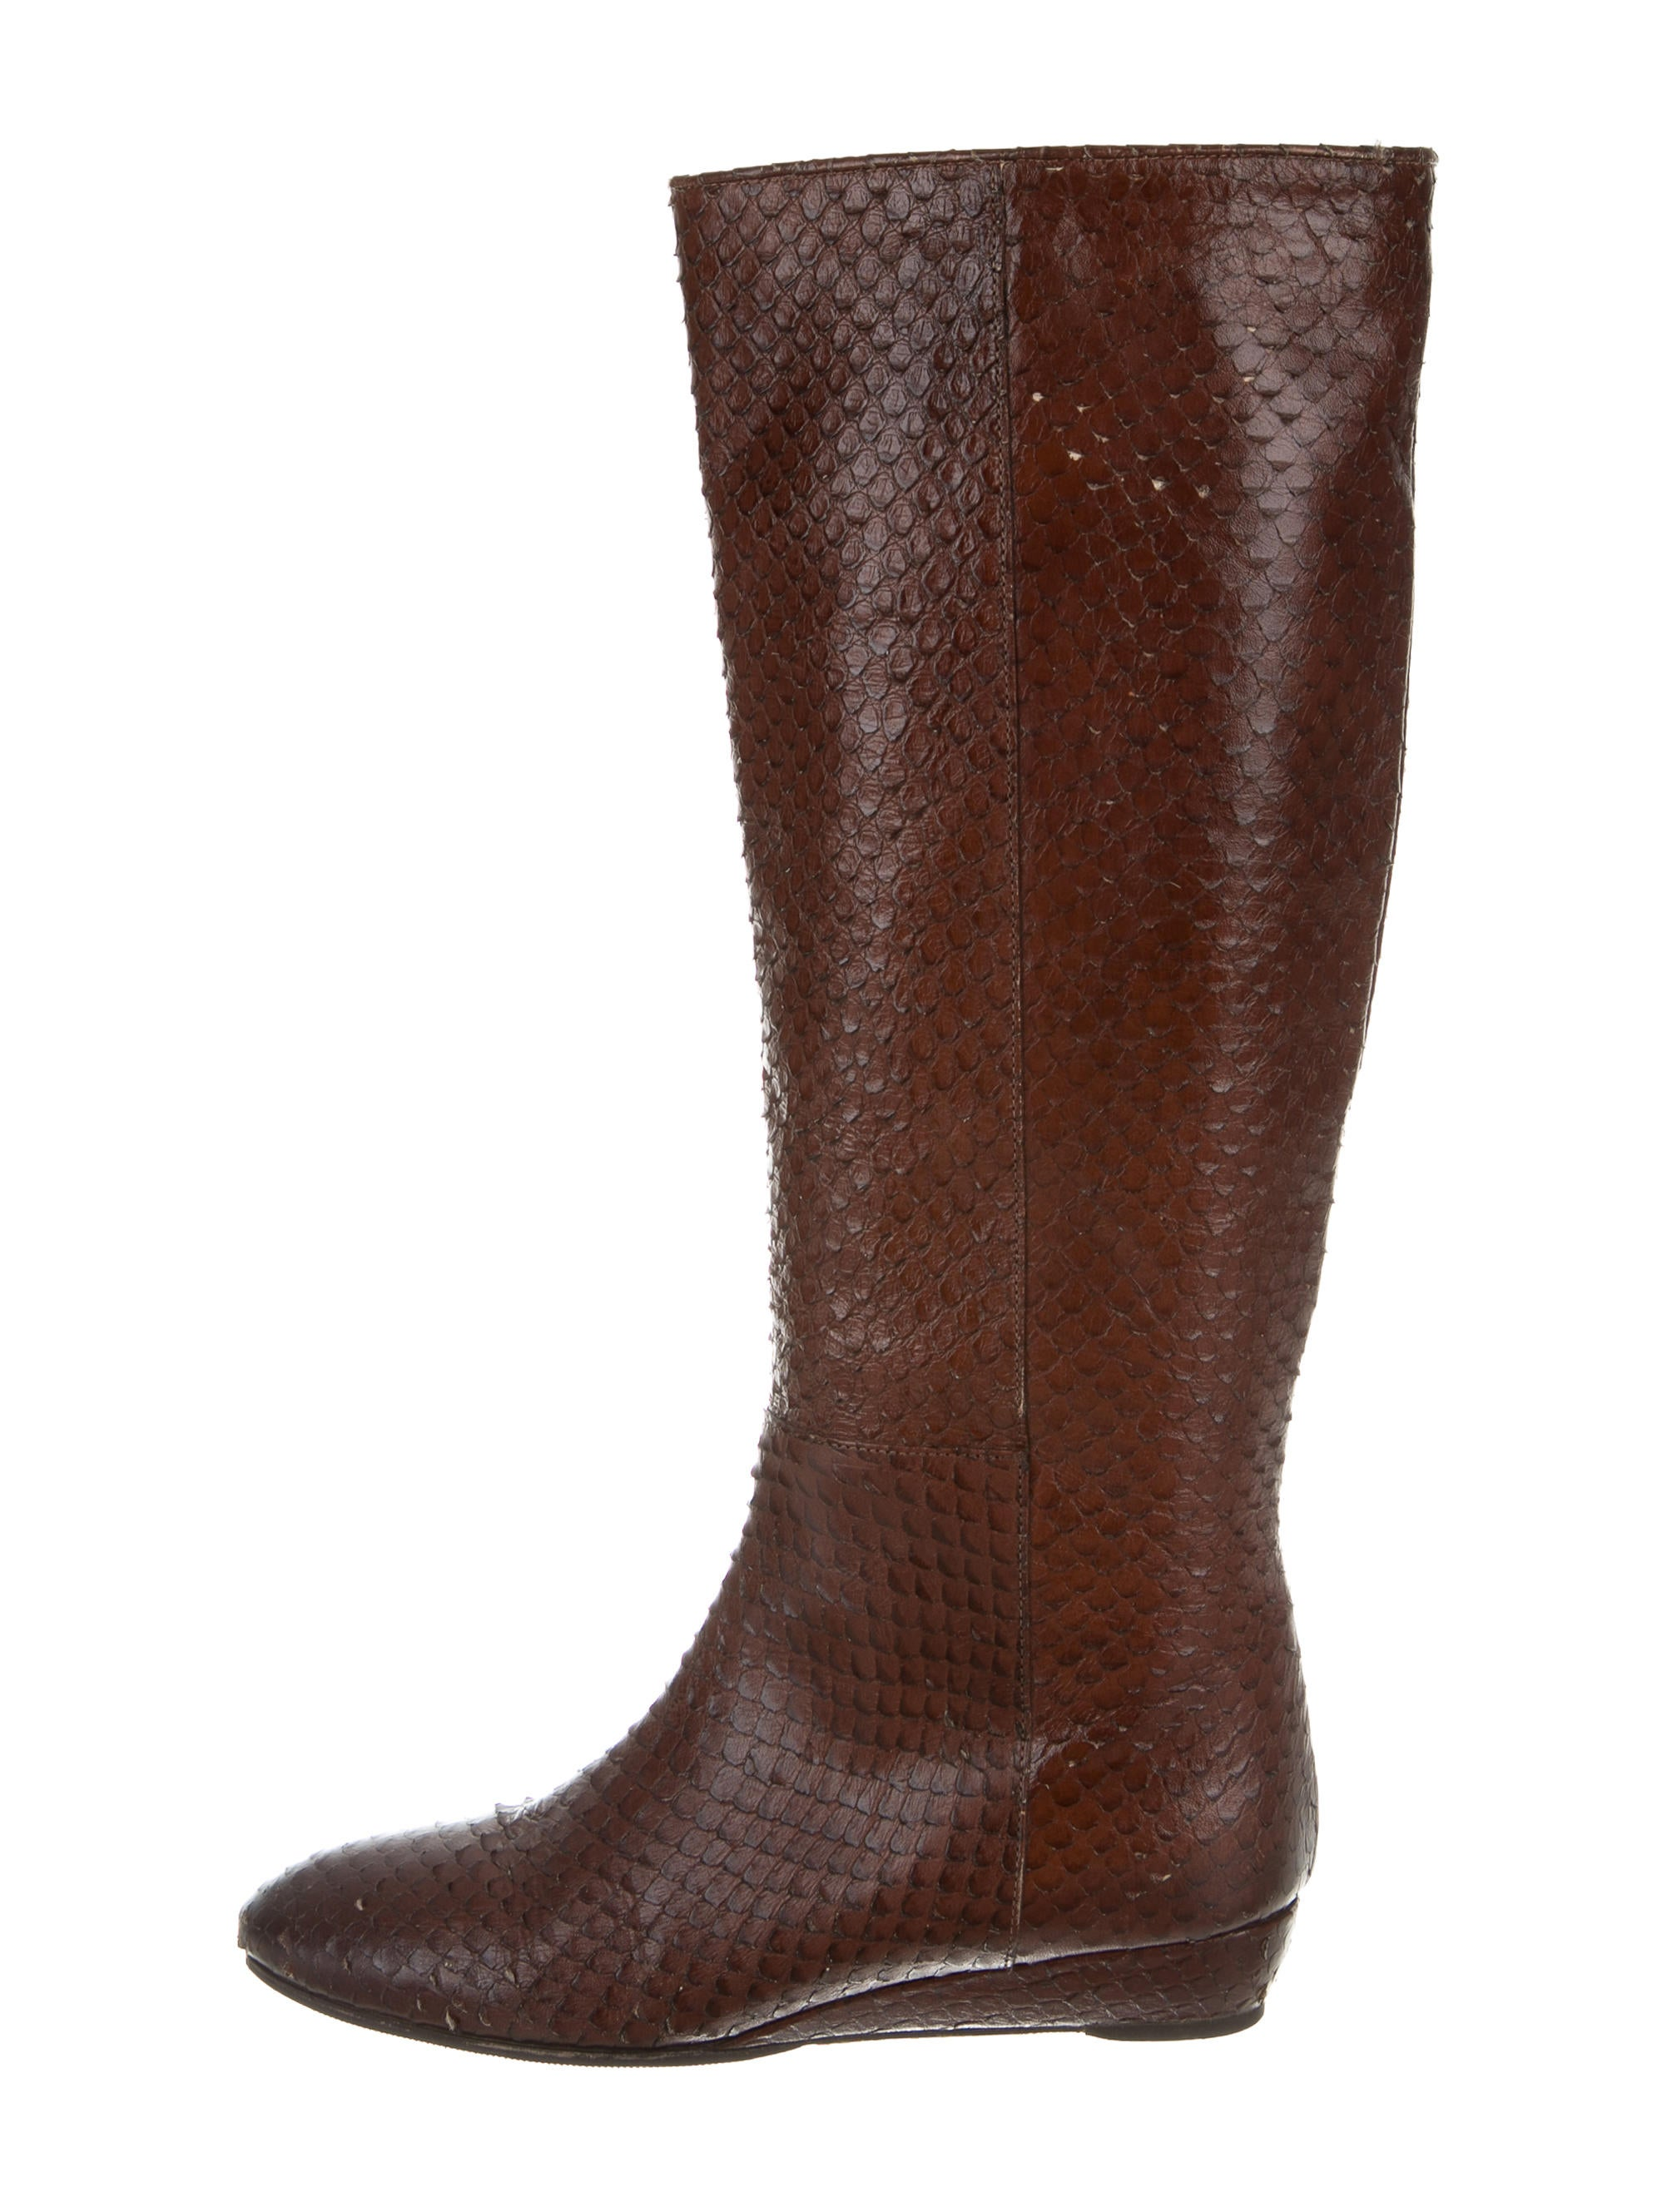 loeffler randall snakeskin knee high boots shoes